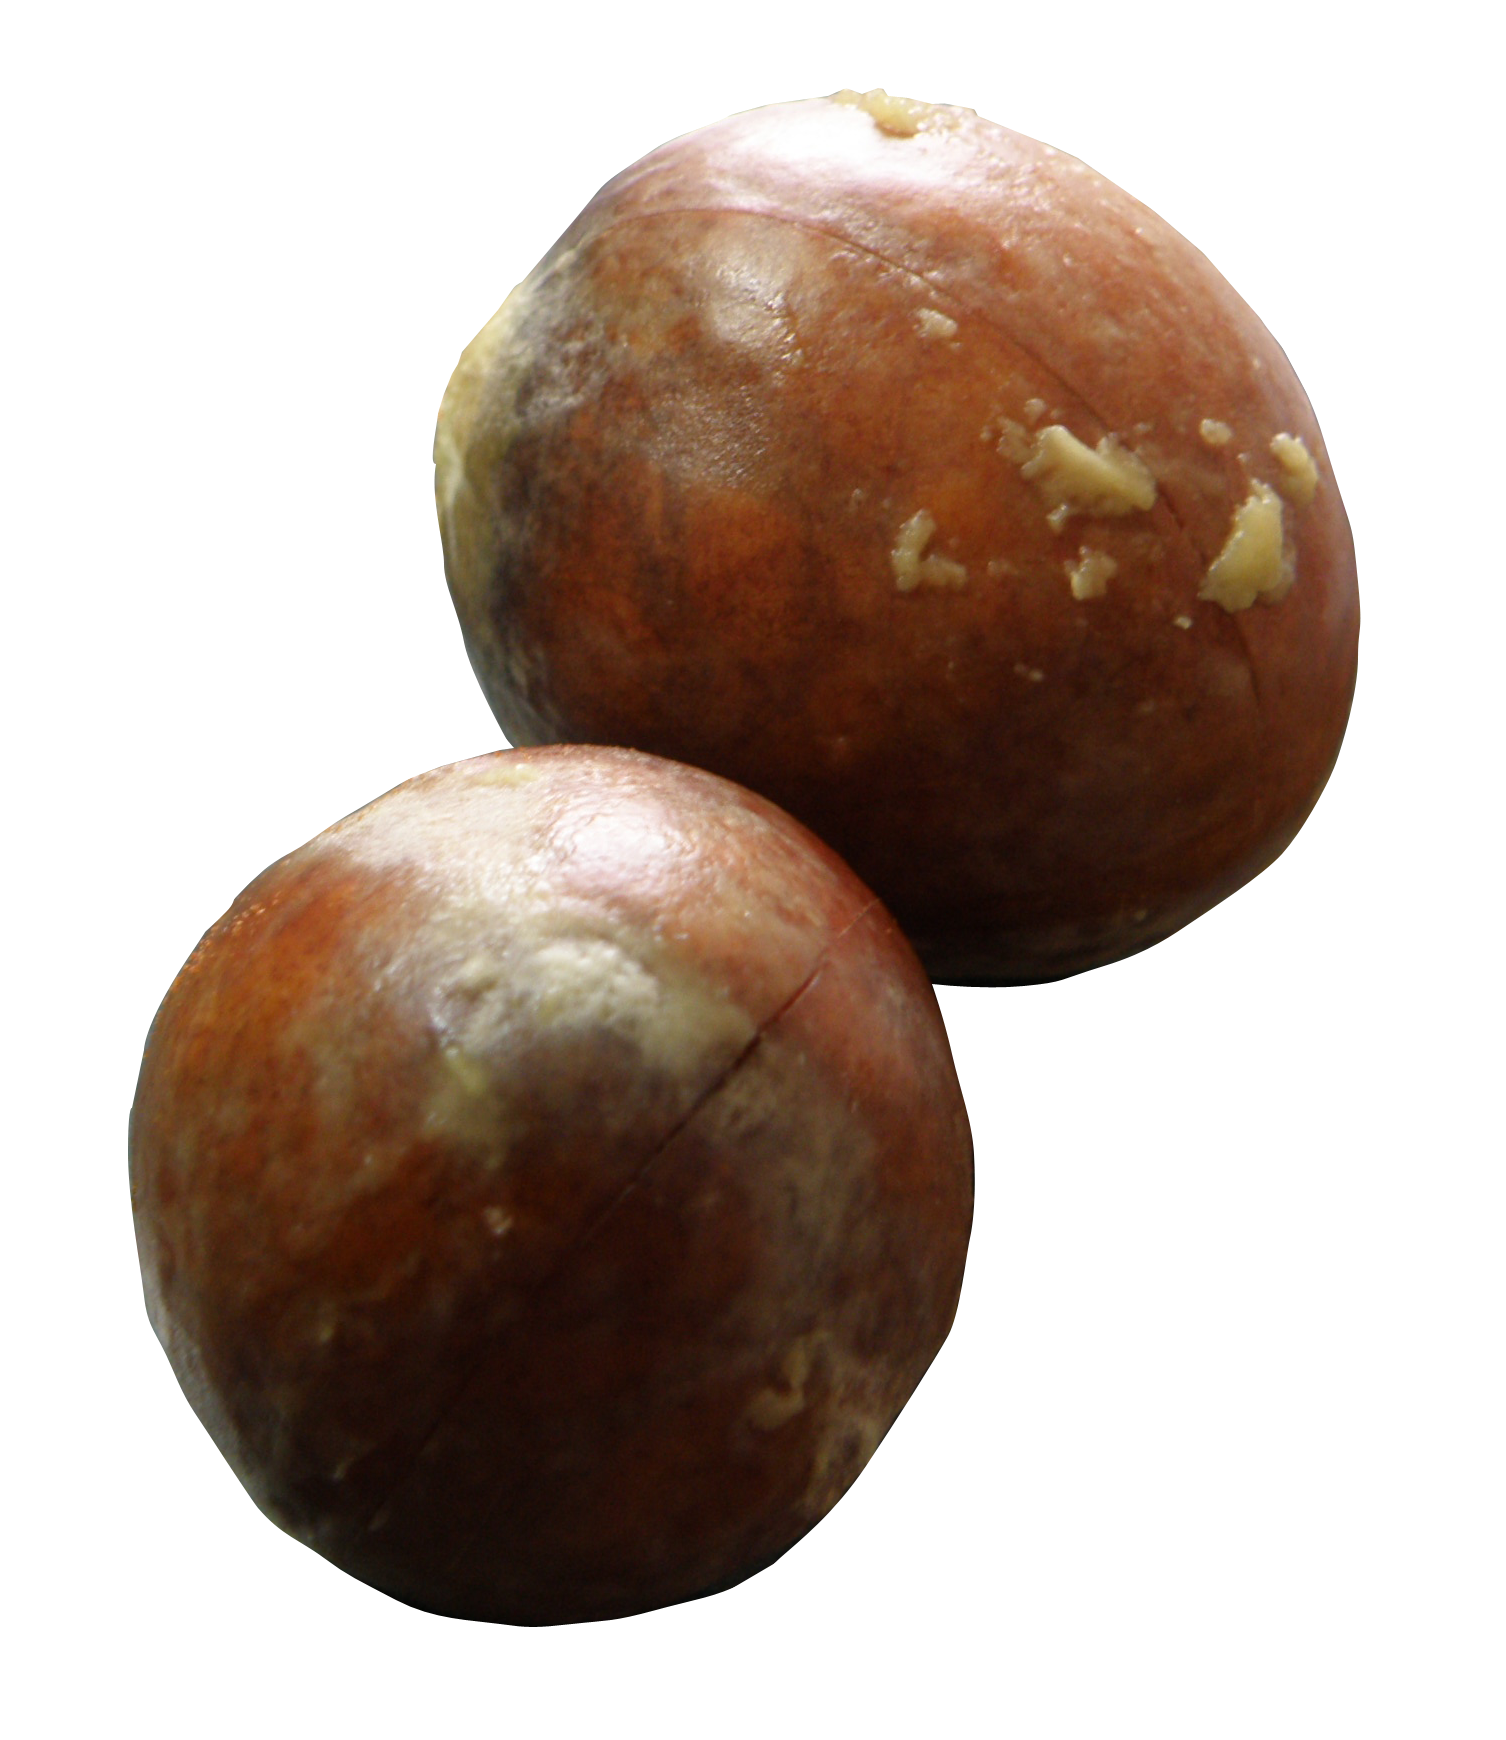 File:Avocado Seeds.png - PNG Of A Seed